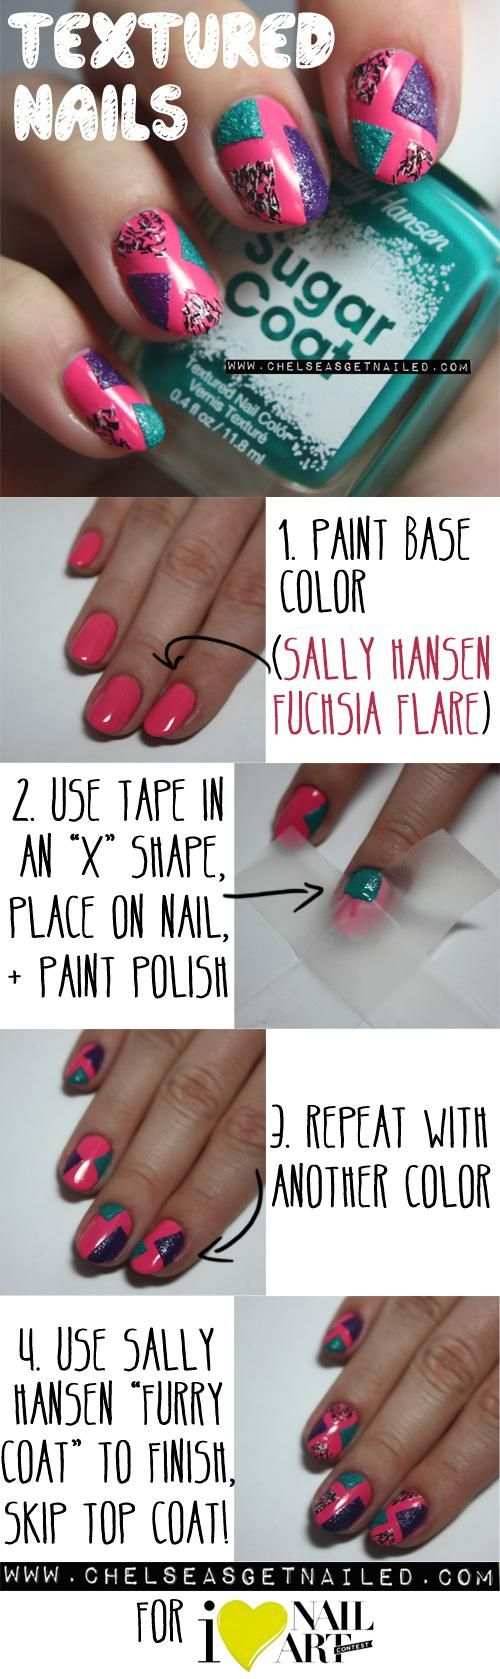 Pink glittery emoji nail art 183 how to paint a glitter - Easy Tutorial On How To Create Textured Nail Art